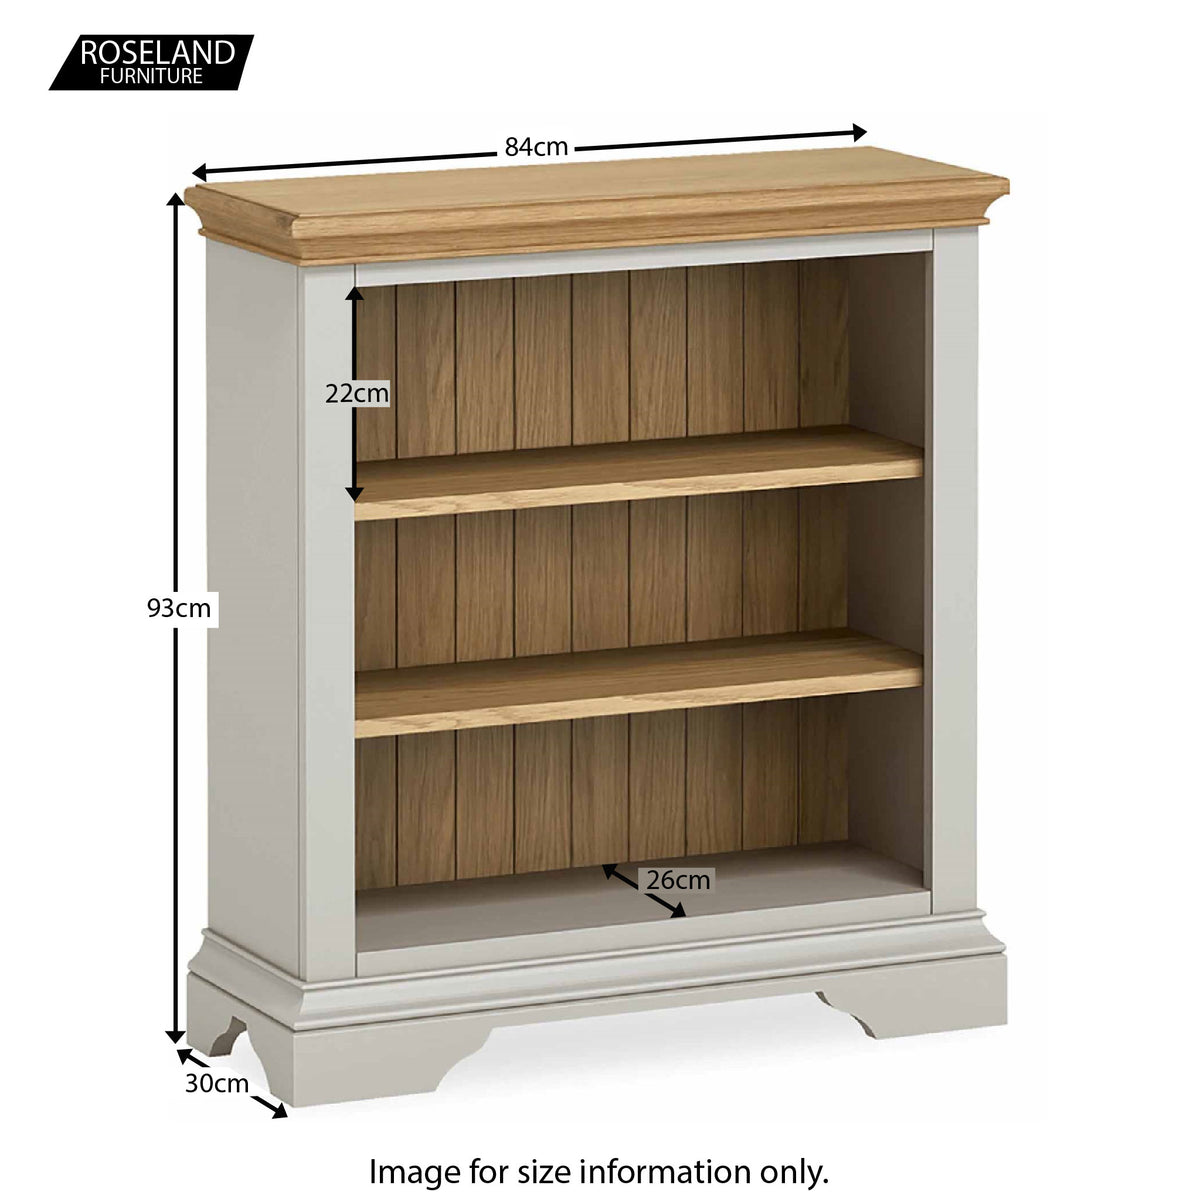 Normandy Grey Low Bookcase - Size Guide